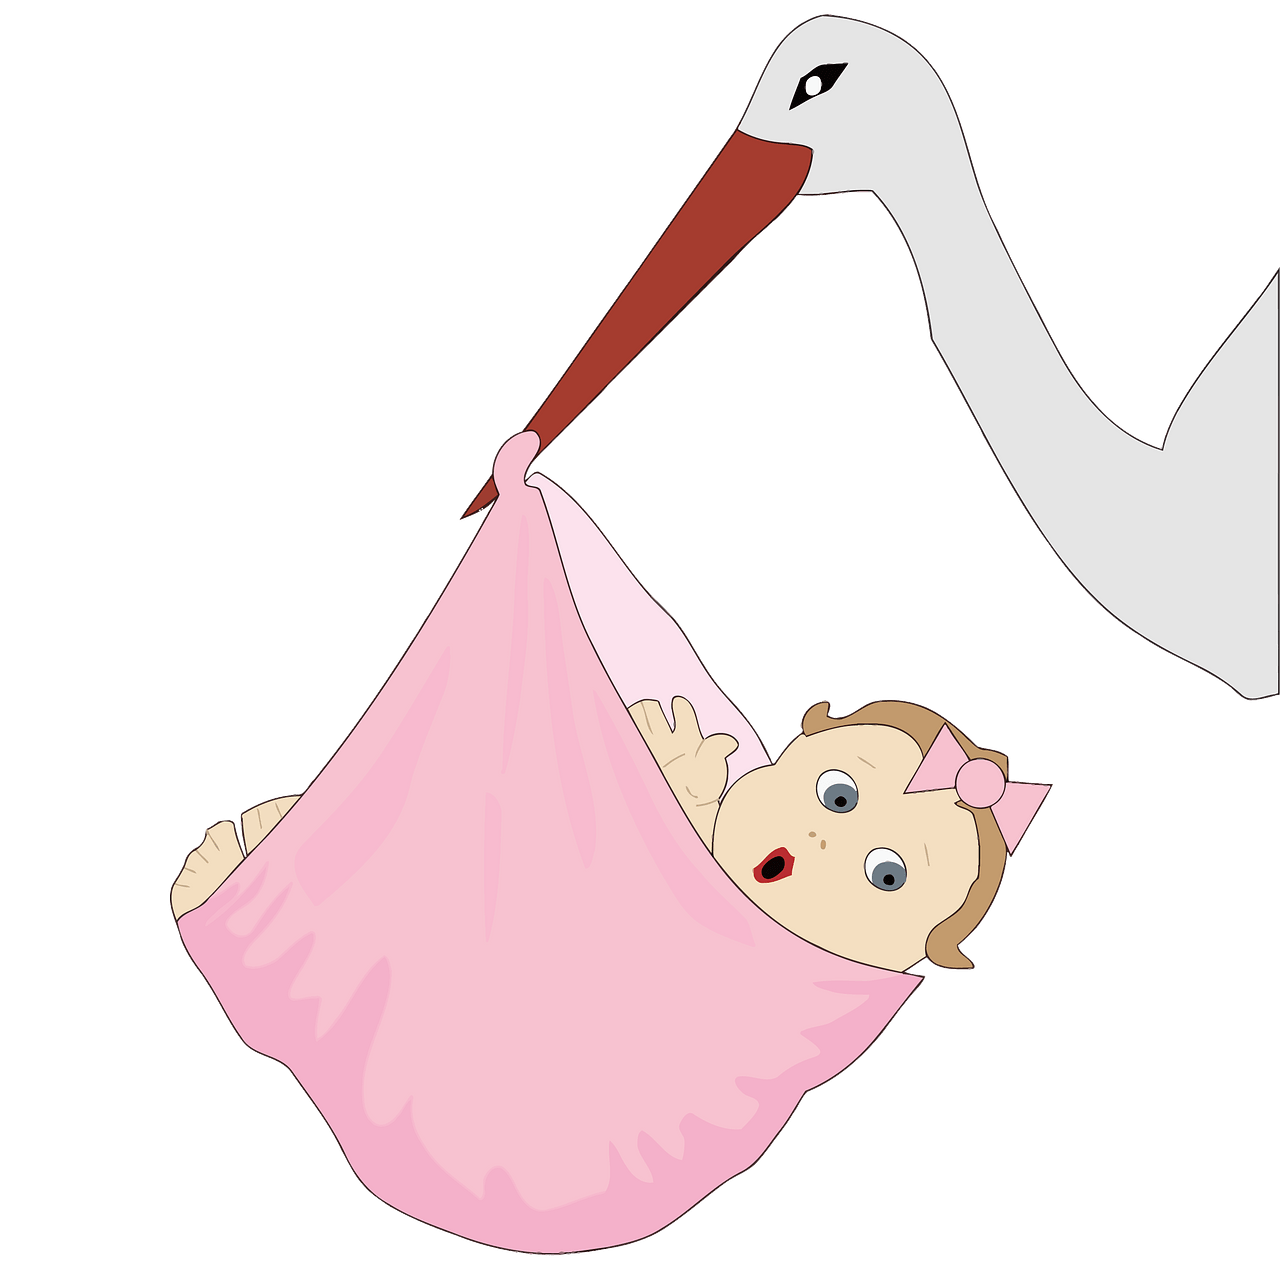 Stork with a baby girl clipart. Free download..